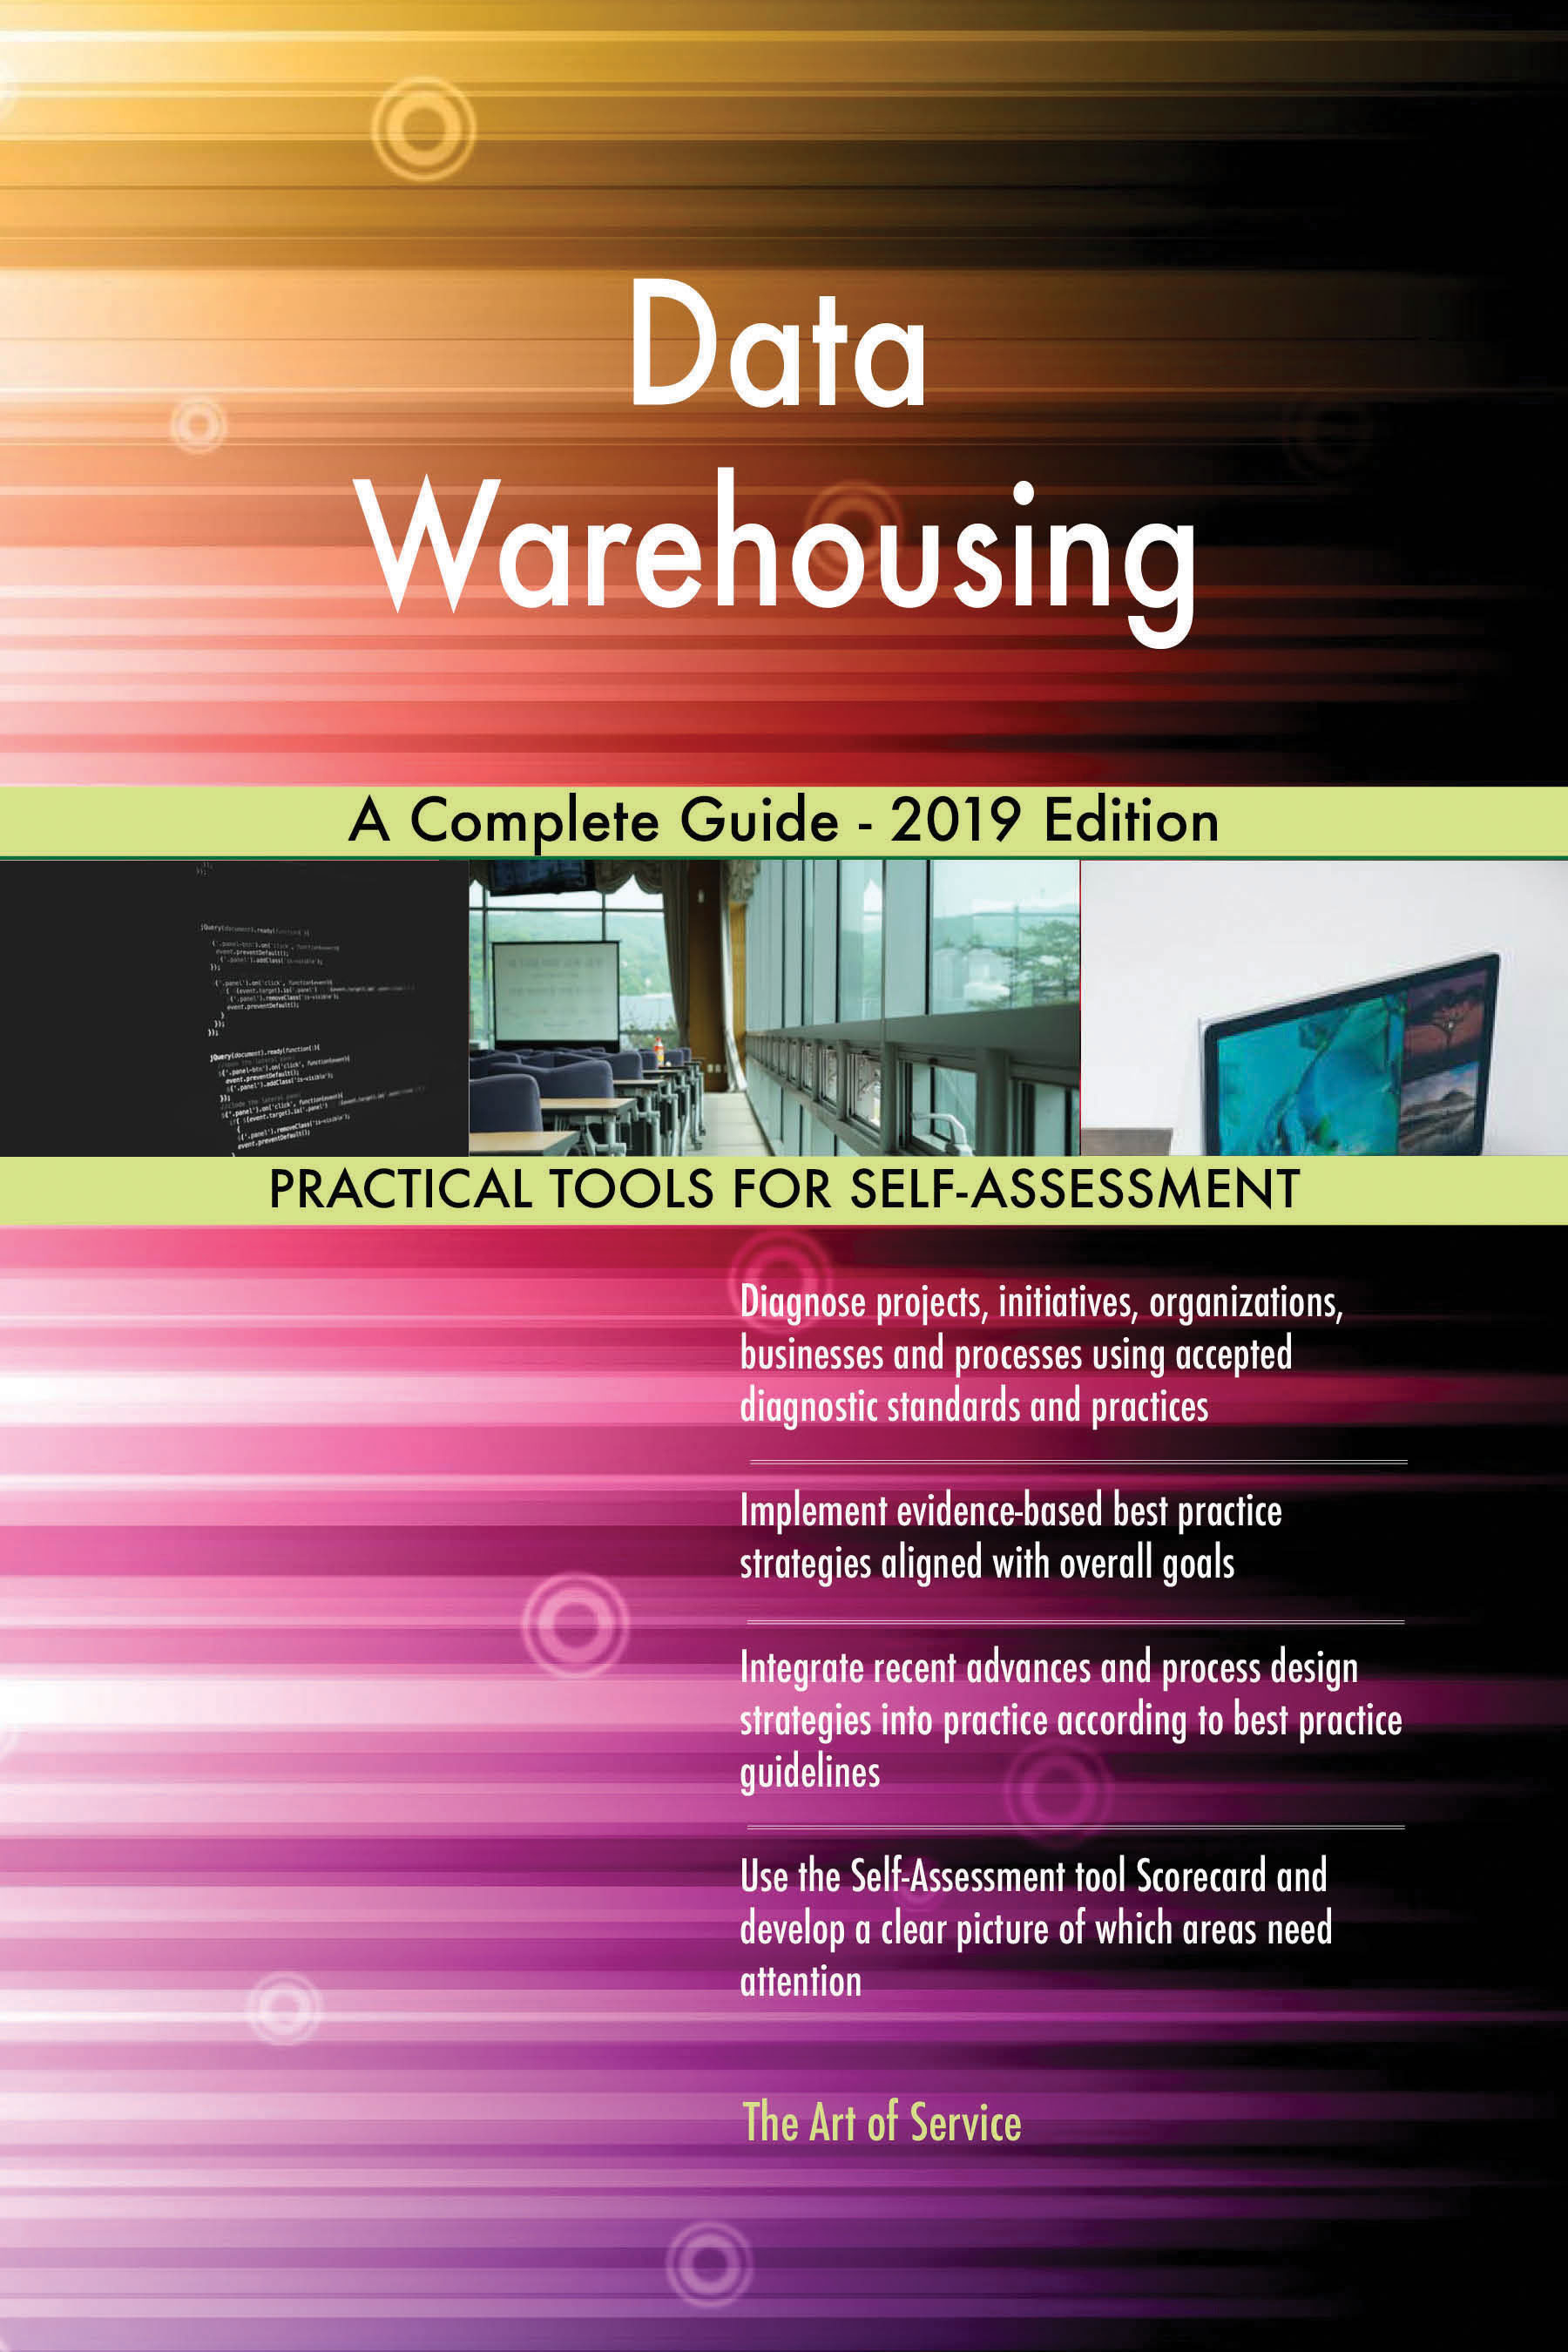 Data Warehousing A Complete Guide - 2019 Edition | BUKU - Study ...